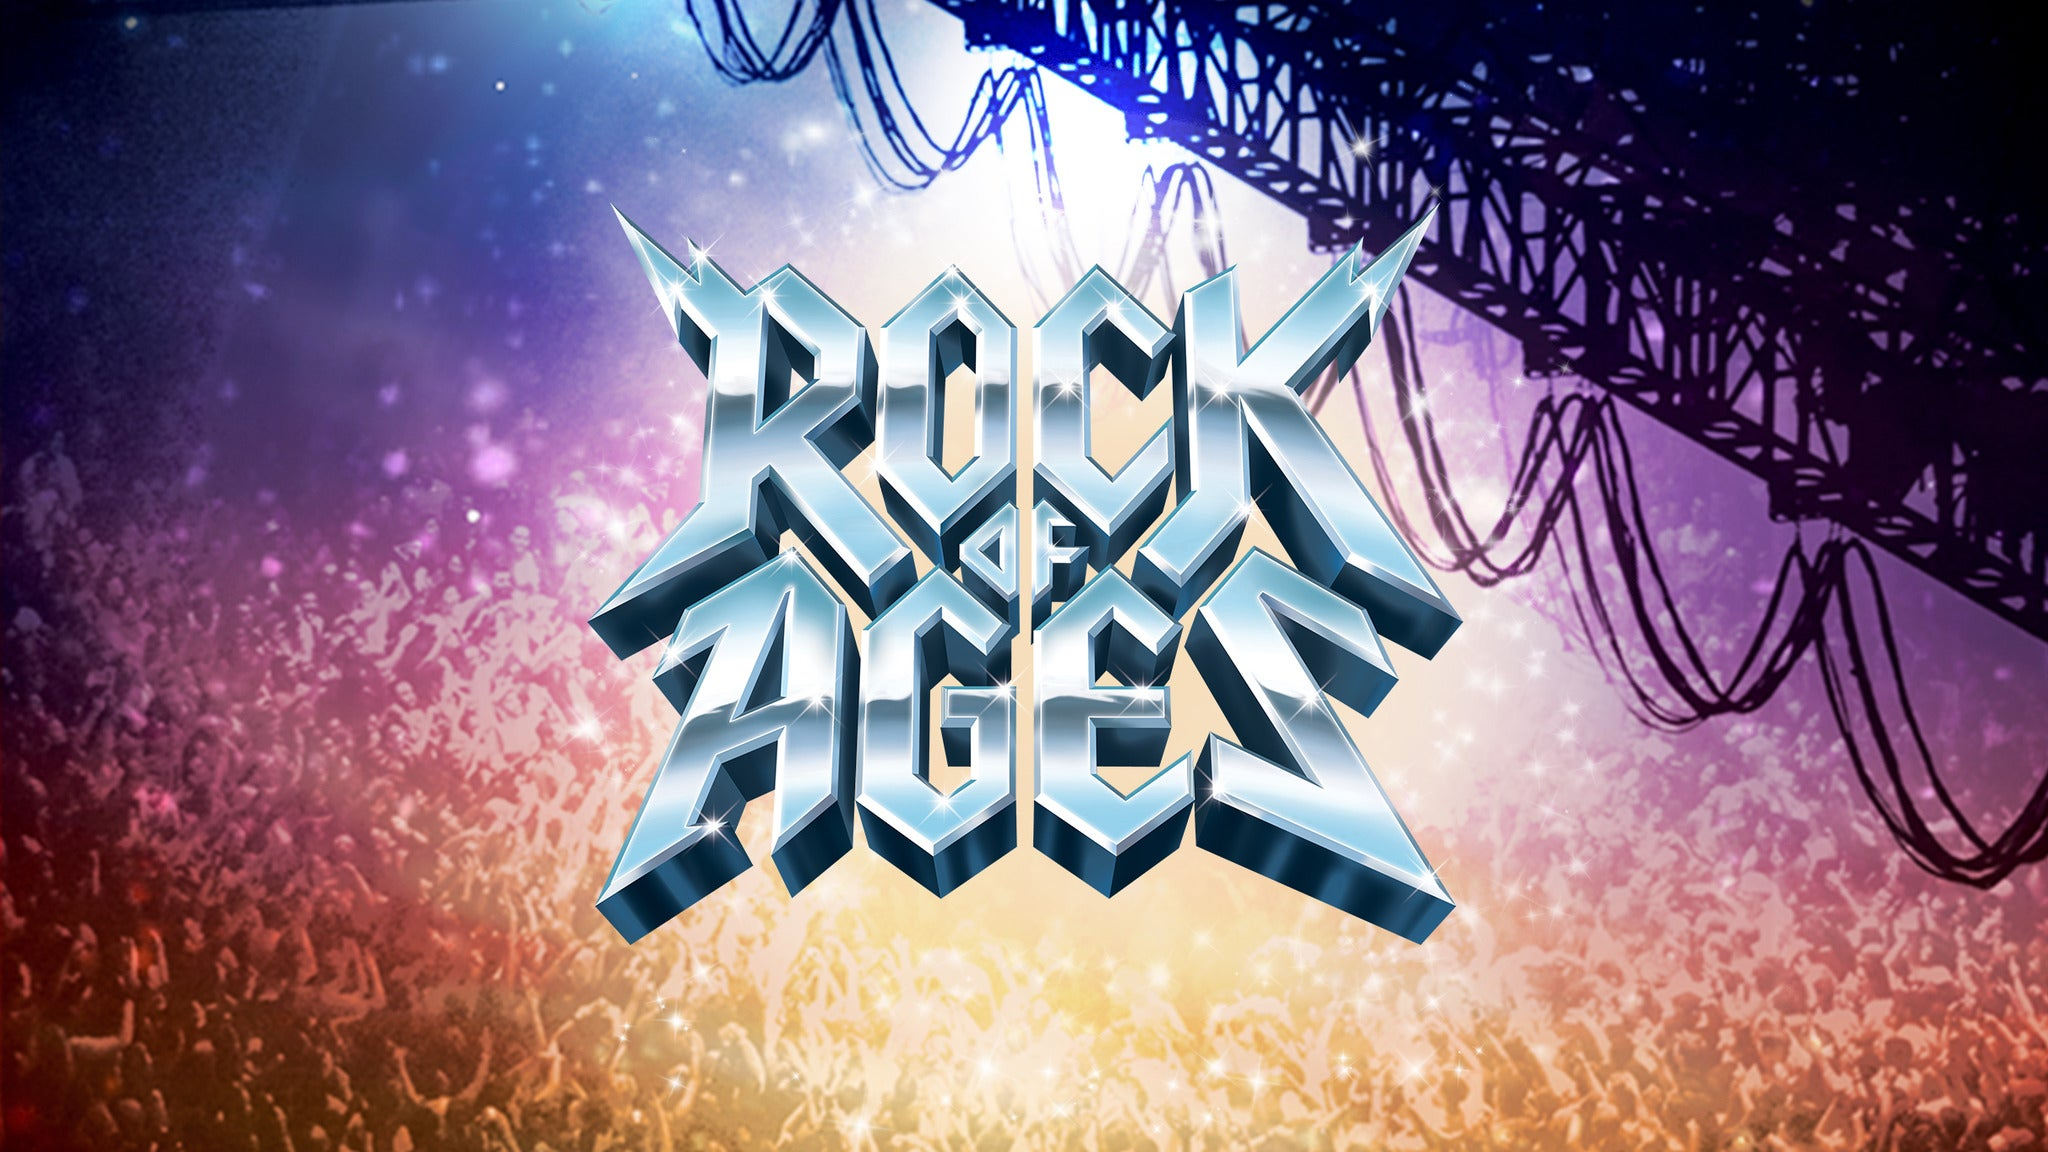 Rock of Ages (Touring) - Mashantucket, CT 06355